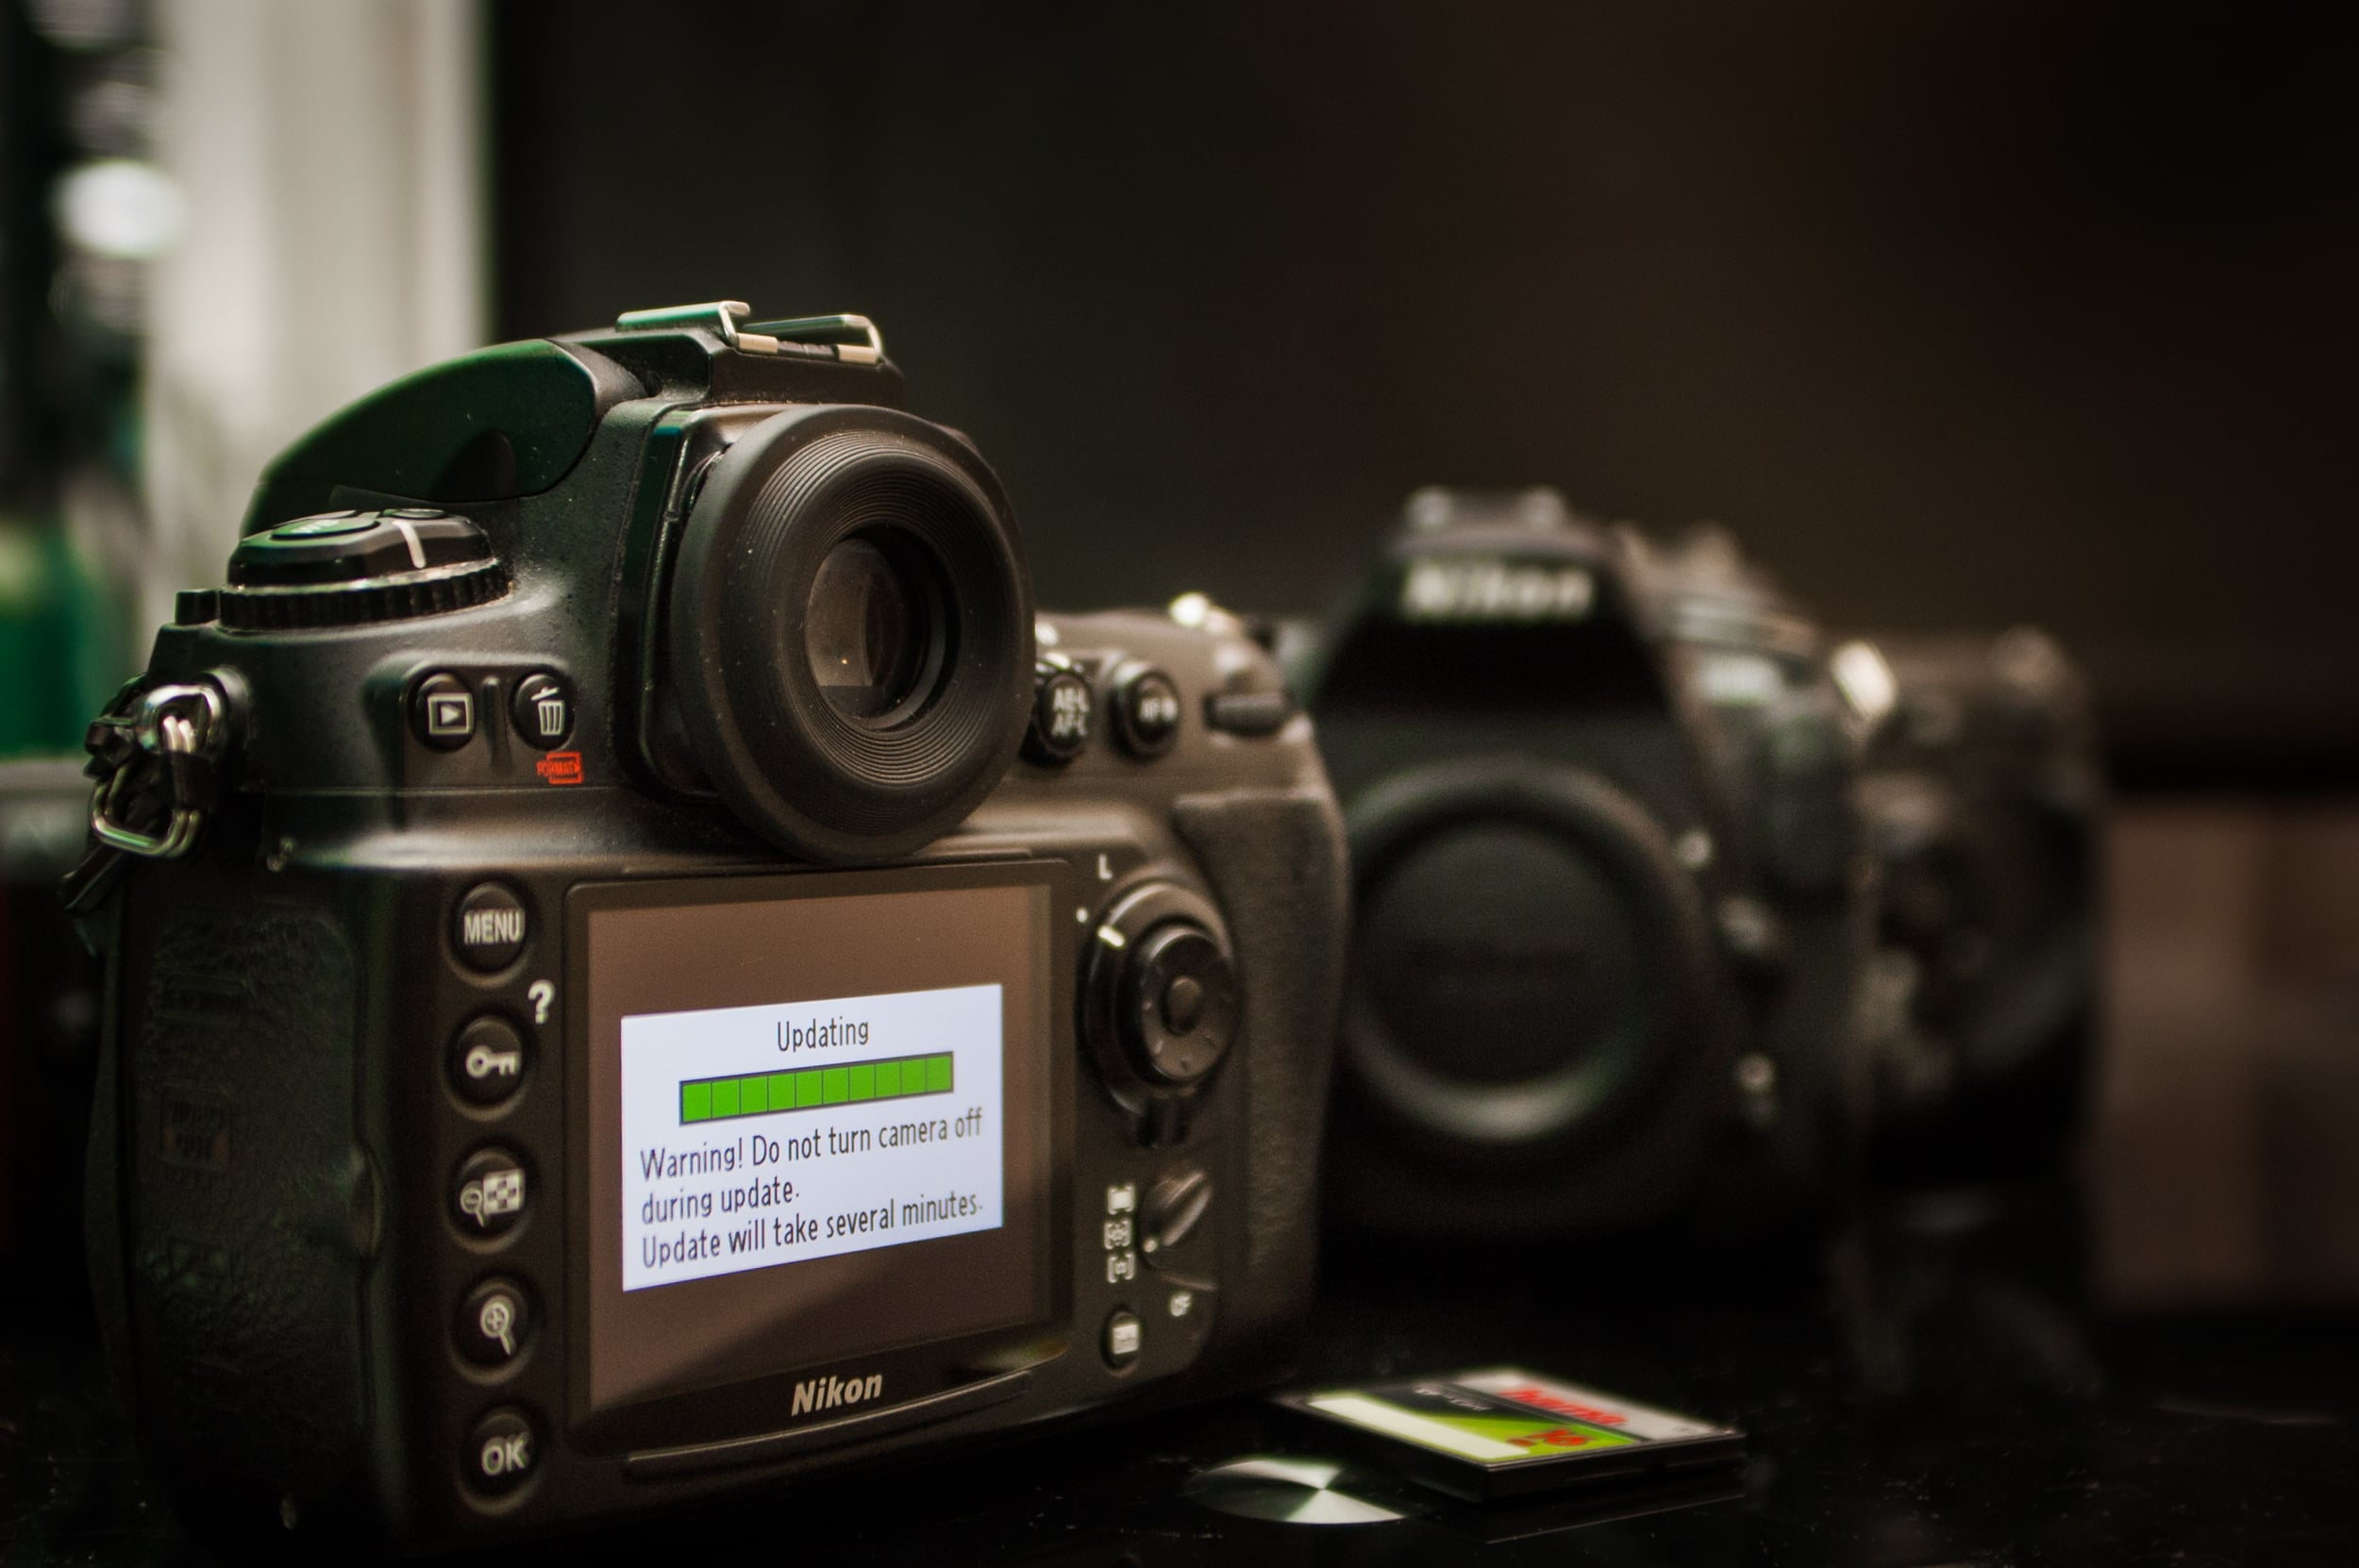 Updating the firmware on a Nikon D700, offset; D200 and D300s